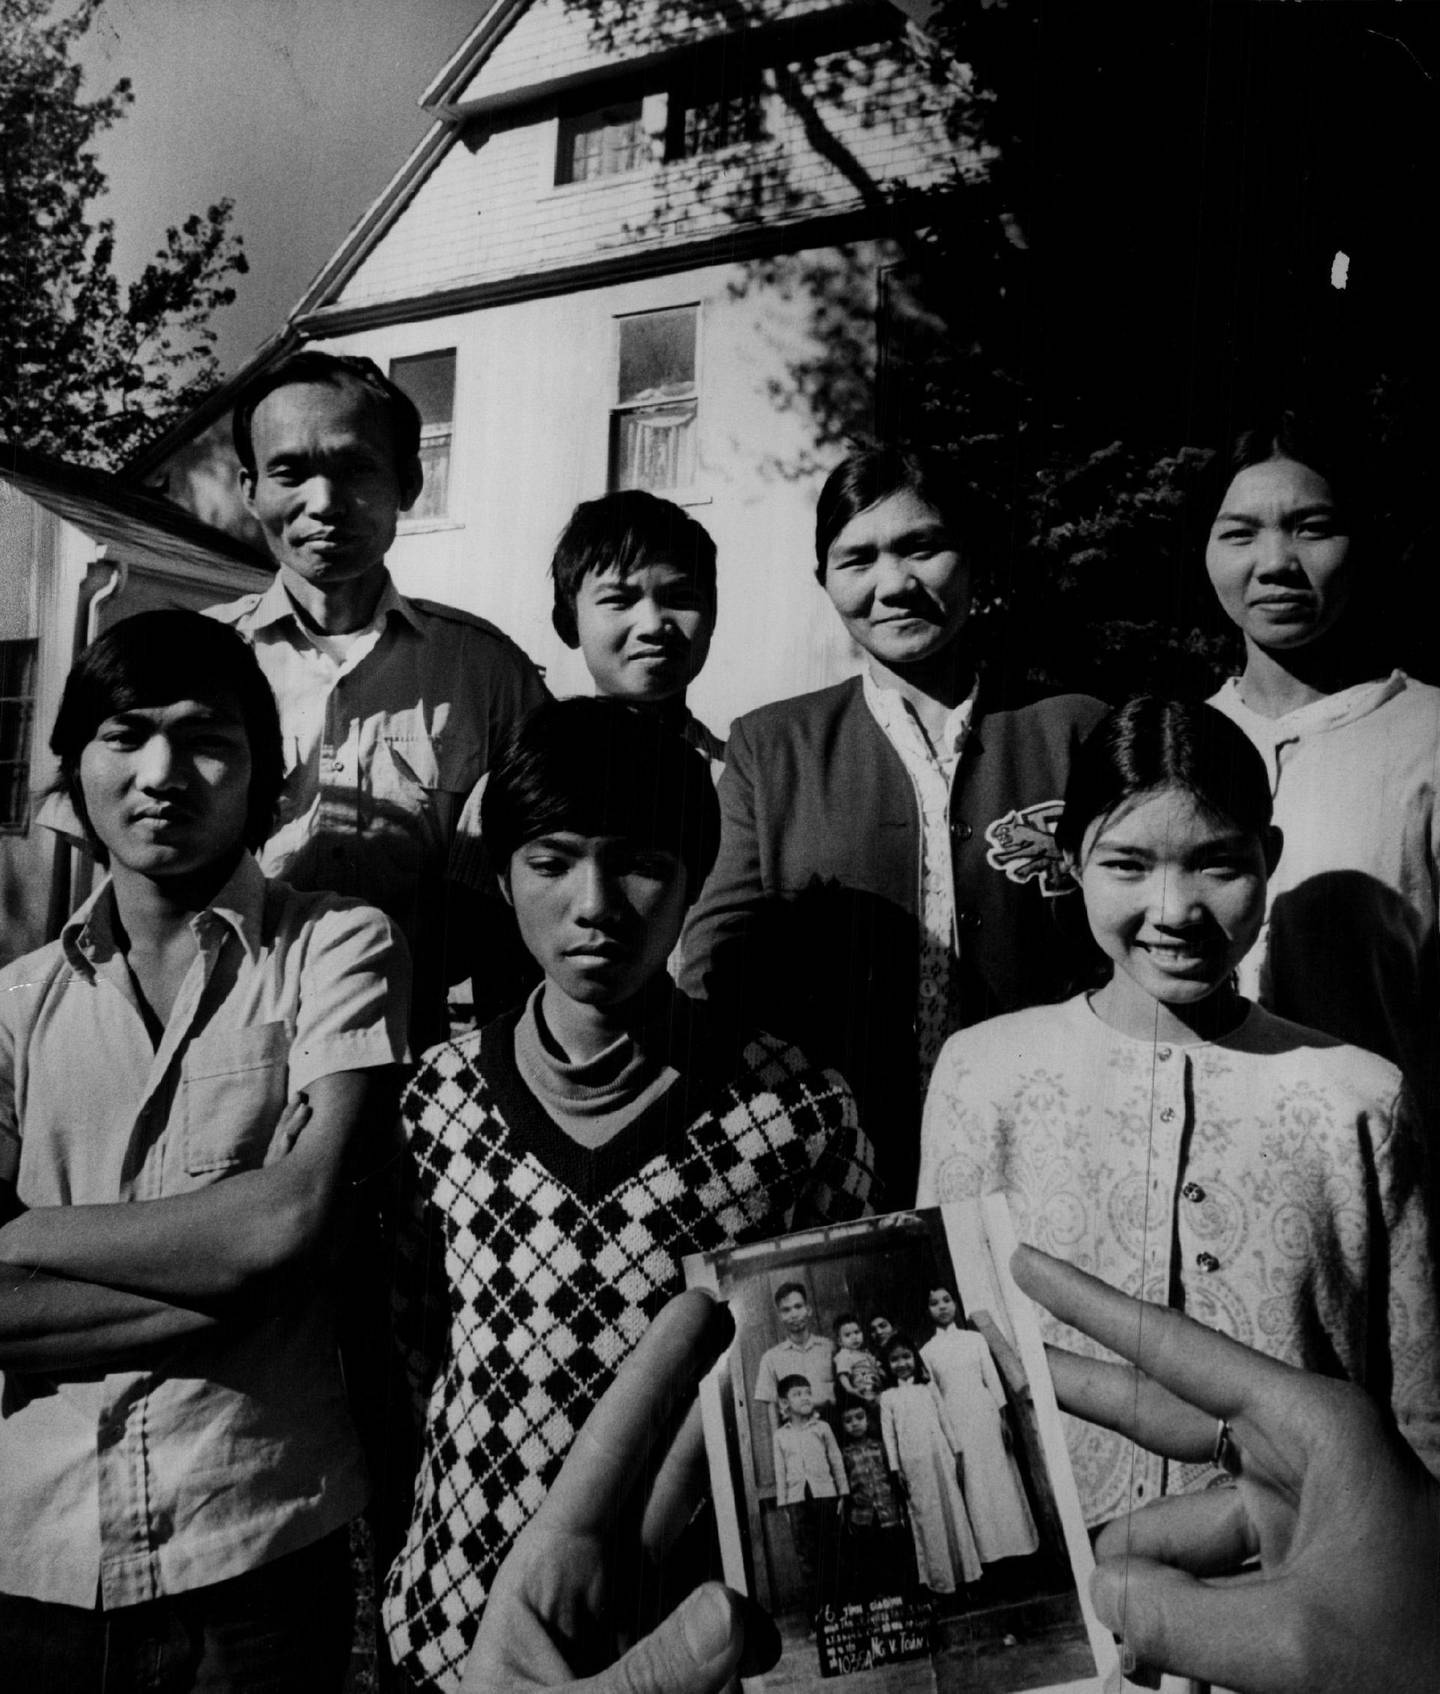 OCT 29 1975, NOV 2 1975; Vietnamese Family Has Come A Long Way; Members of the Nguyen Van Toan family, which arrived in Denver a week ago, pose behind photo taken of the same group about 10 years ago. In the back row, from the left, in both photos are Toan; Ton; Toan's wife, Thoa Thi Trang, and Sang. Front row, from the left, ate Tuyen, Tung, and Son. The Nguyen family sailed 1,400 miles across the South China Sea from Vietnam to Manila last spring to flee from South Vietnam. (Story, Photos On Page 29); Vietnam - (Refugees);  (Photo By Steve Larson/The Denver Post via Getty Images)